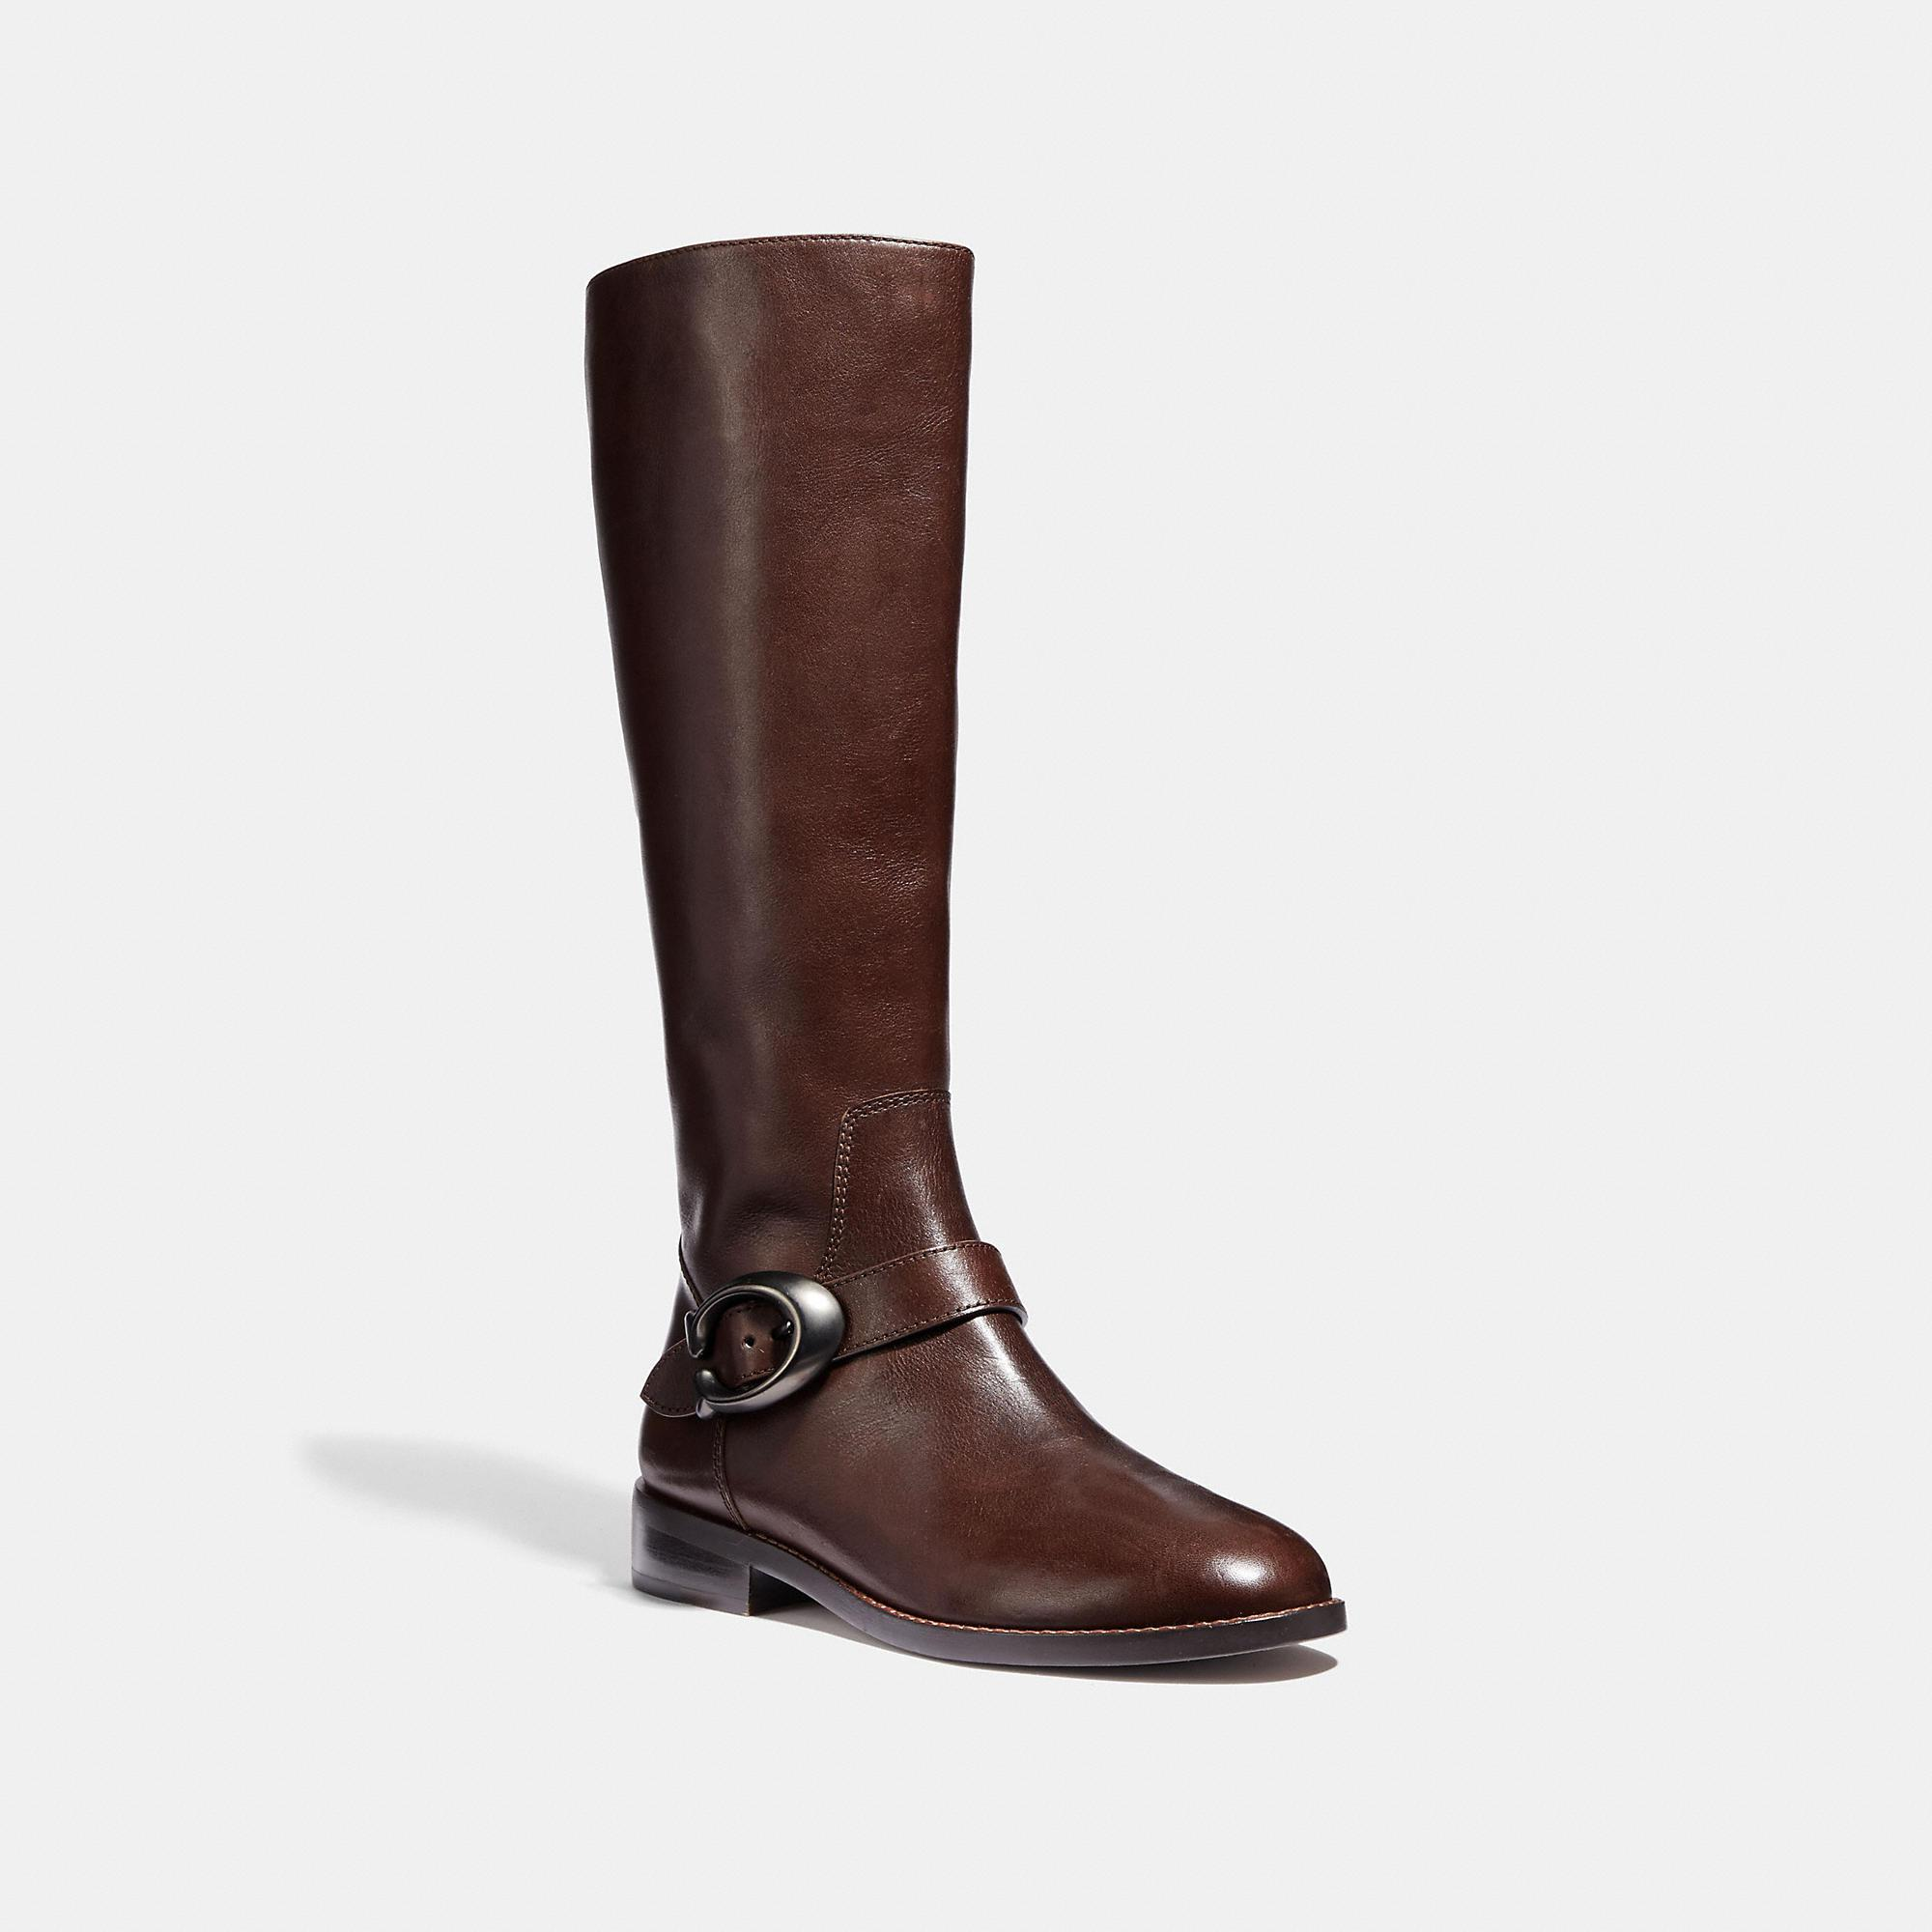 2a4a929357e8 Lyst coach riding boot in brown save jpg 2000x2000 Coach riding boots for  women